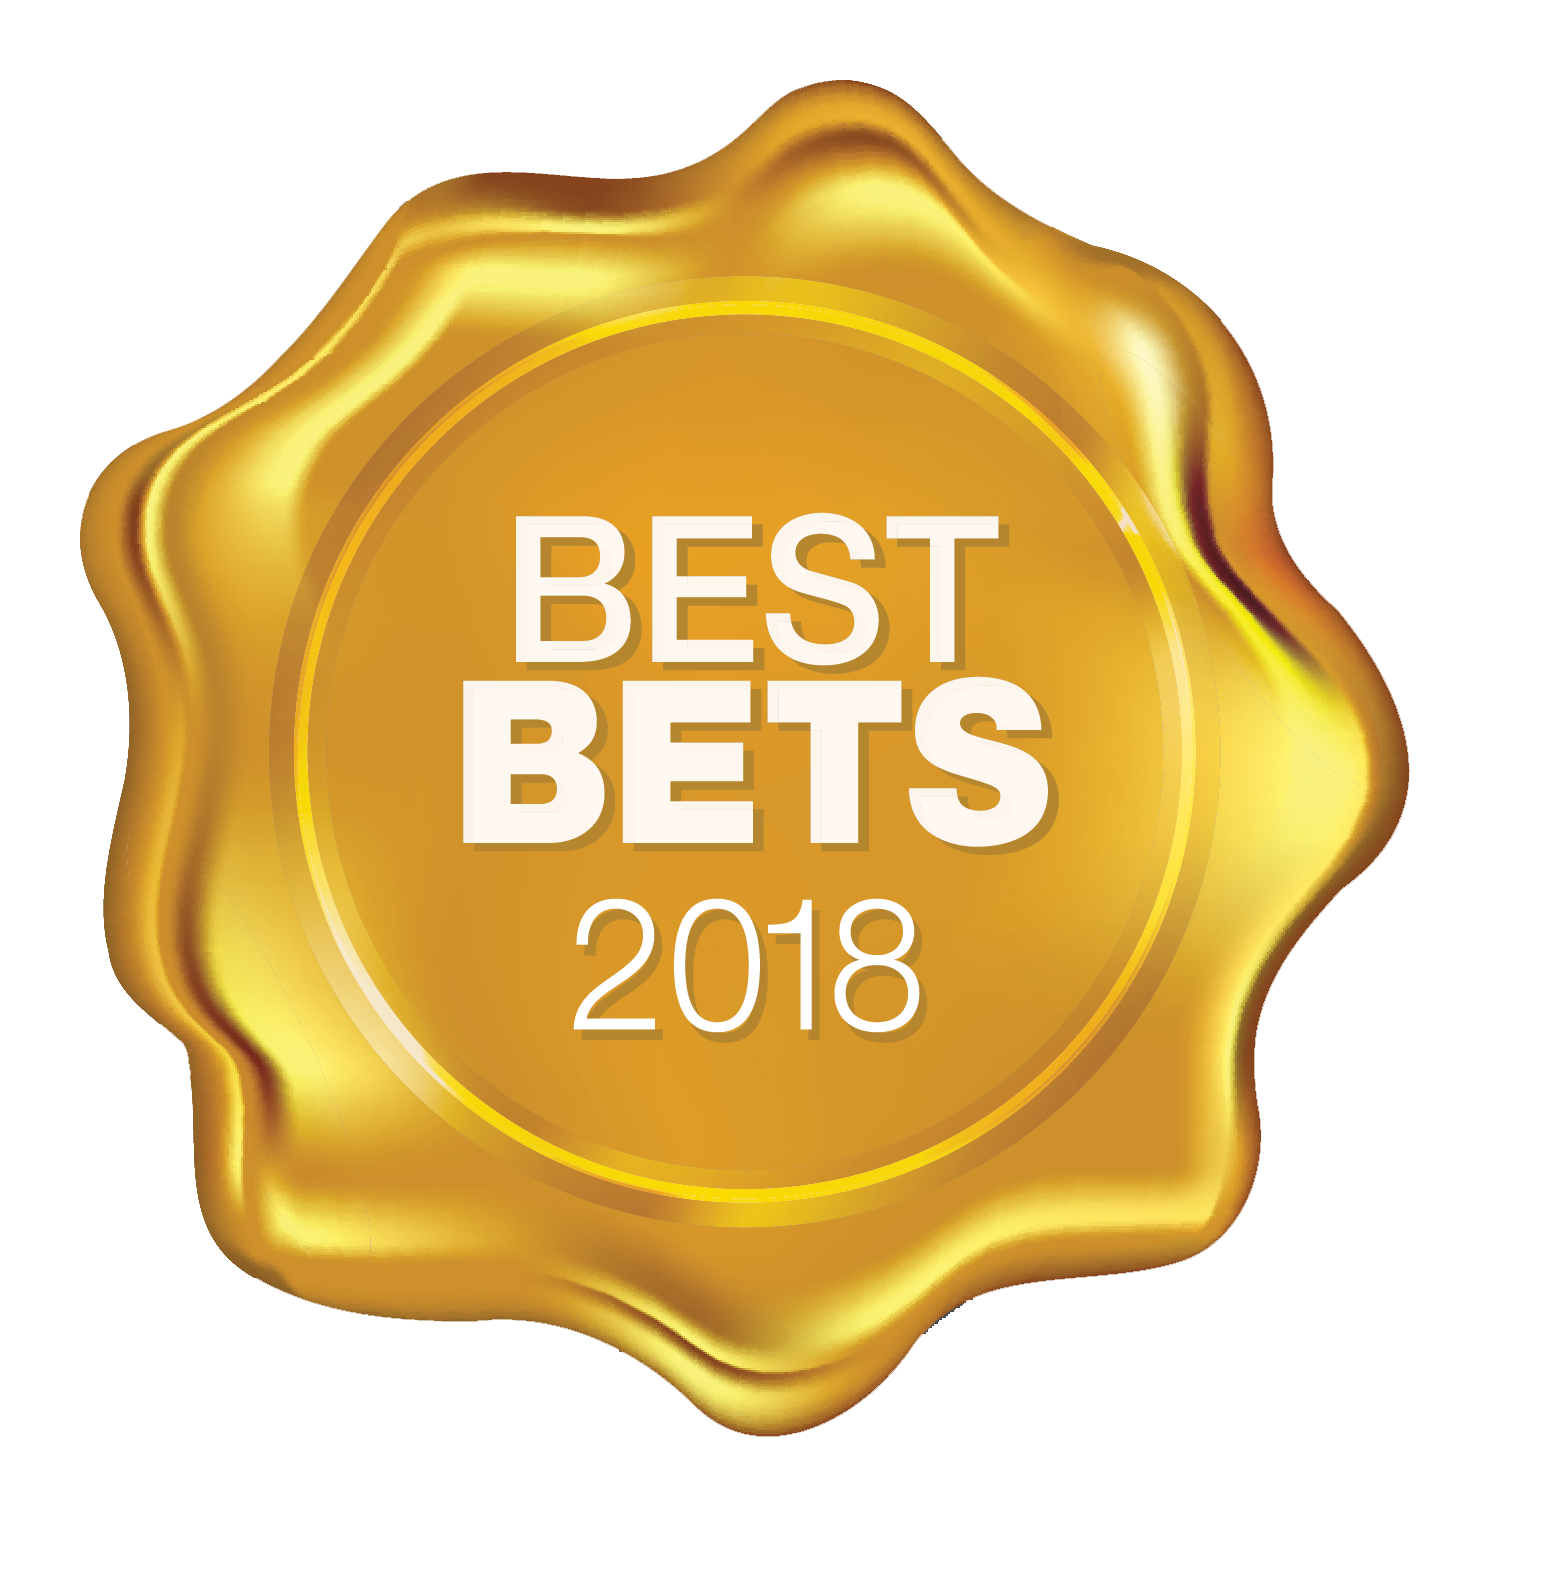 Best Bets 2018